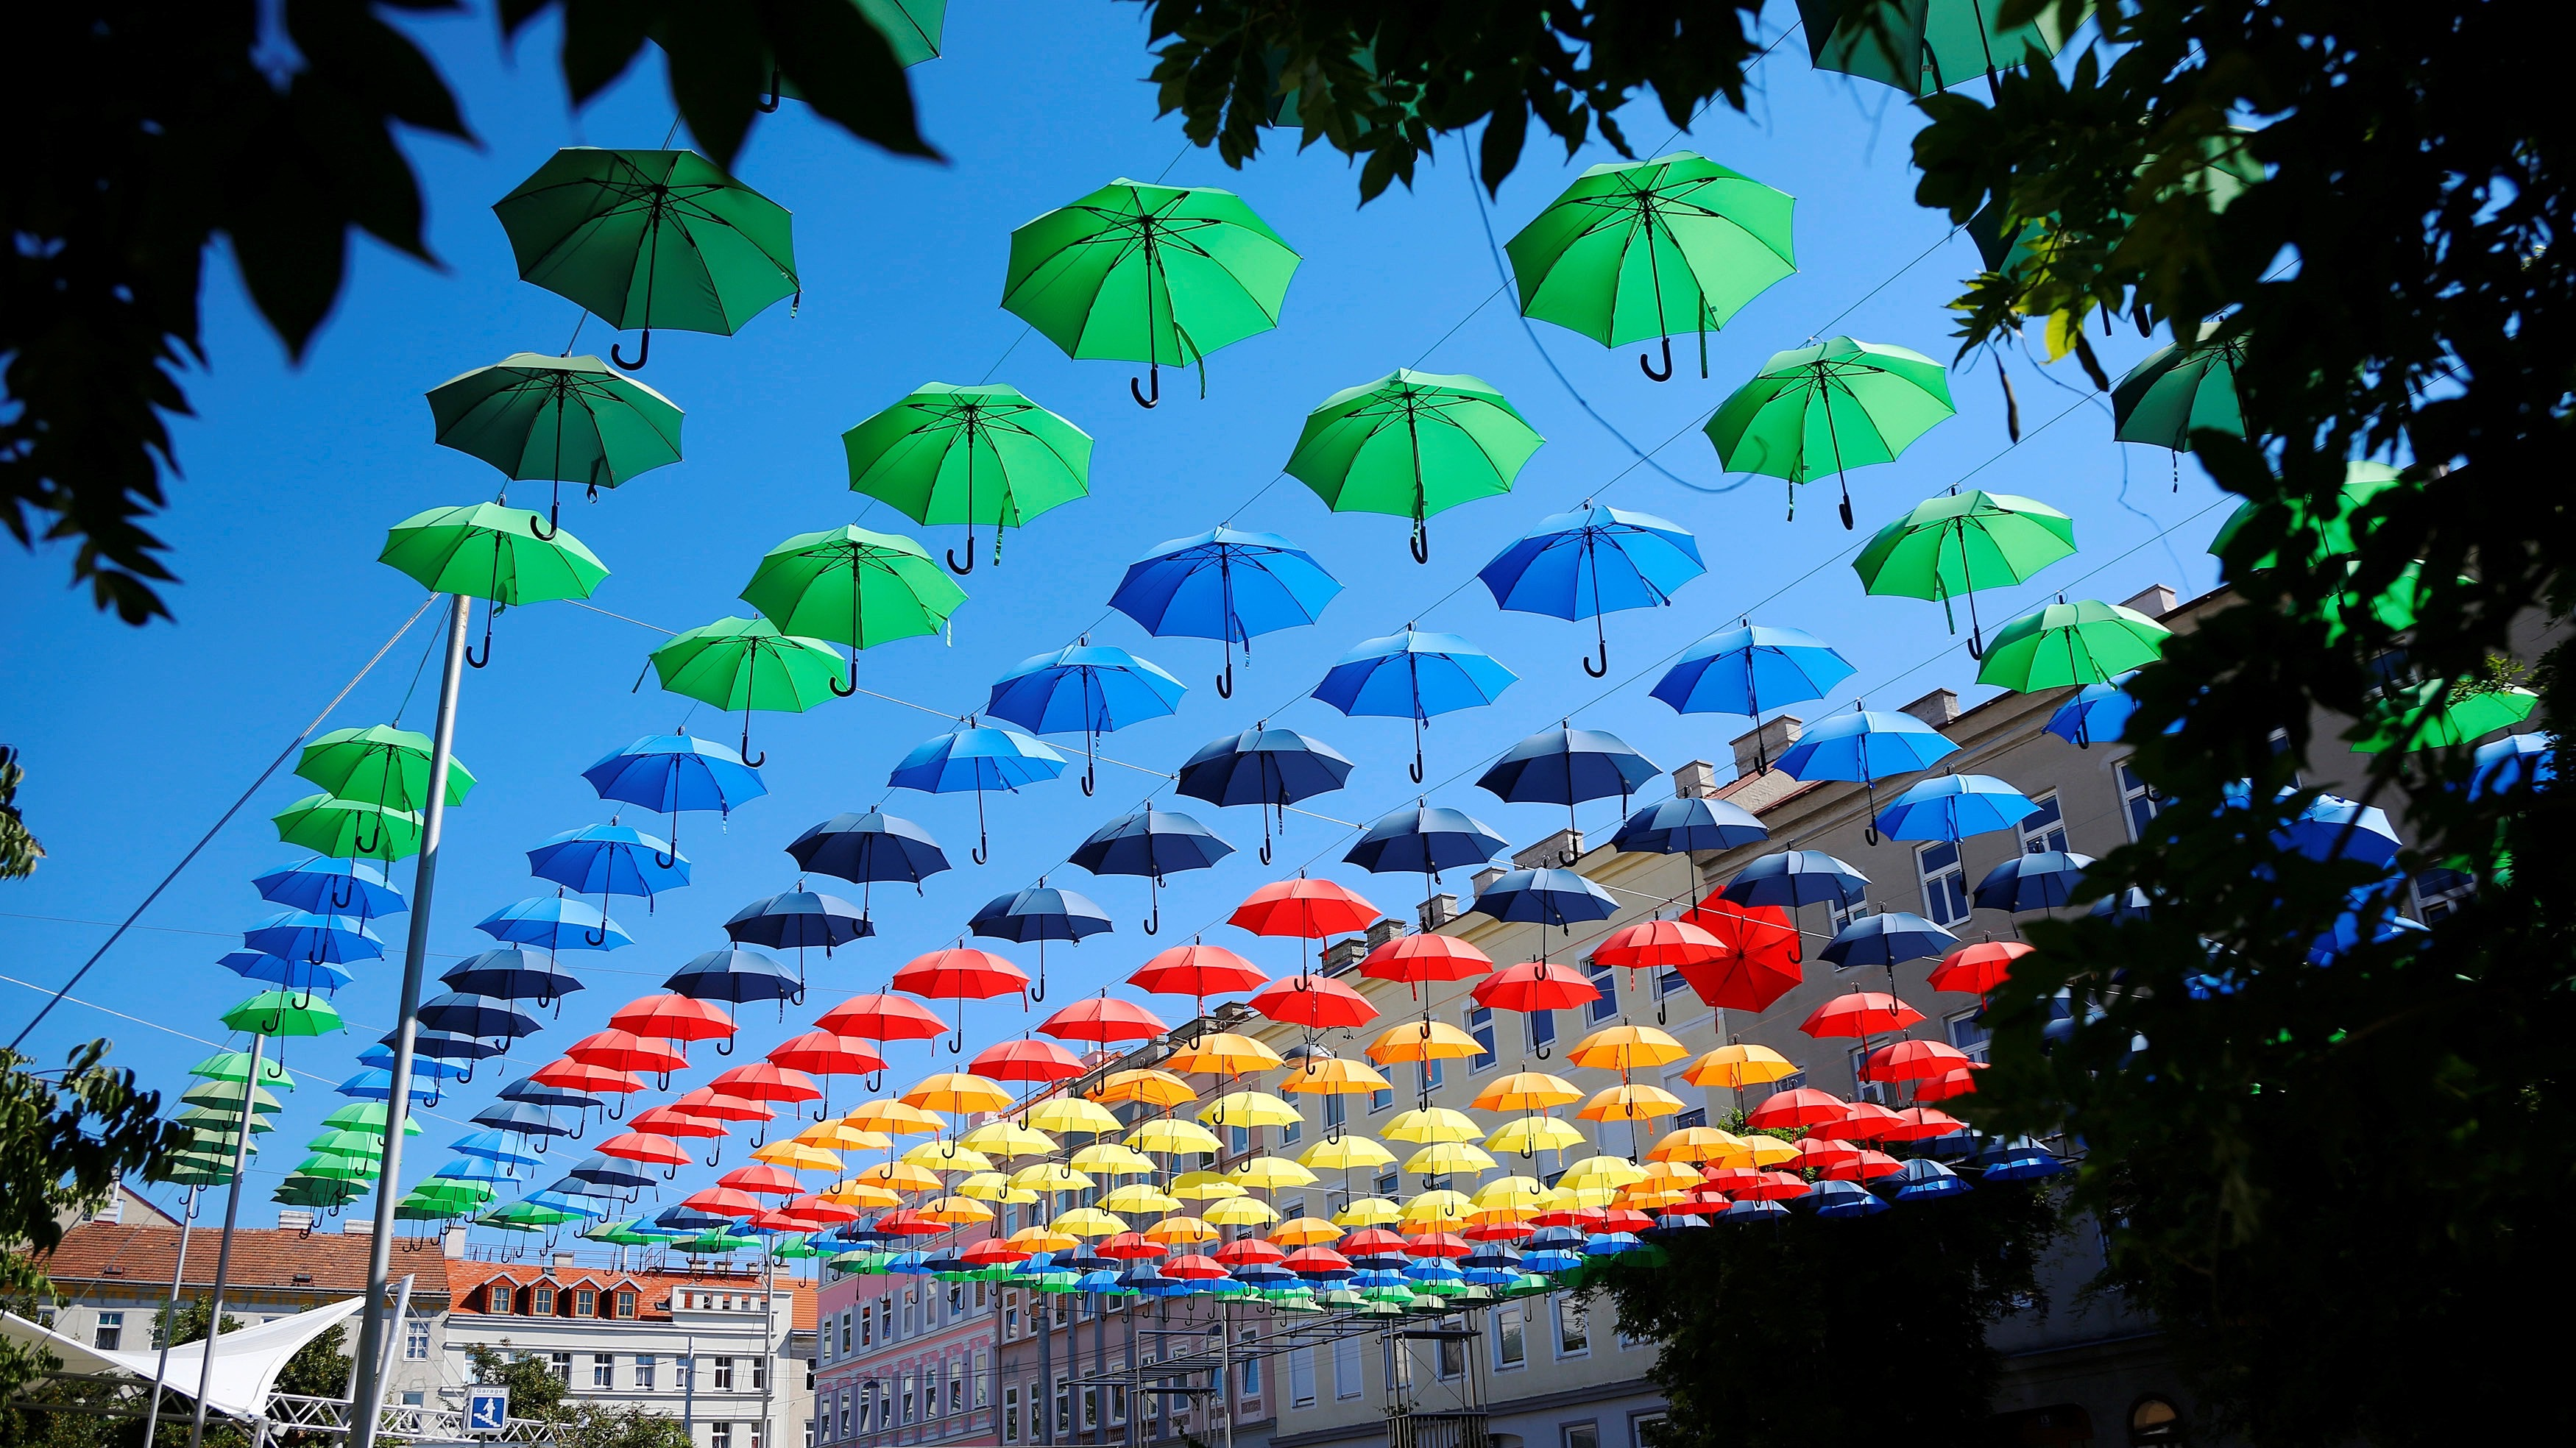 Two women walk under colourful umbrellas decorating Dorner Platz in Vienna